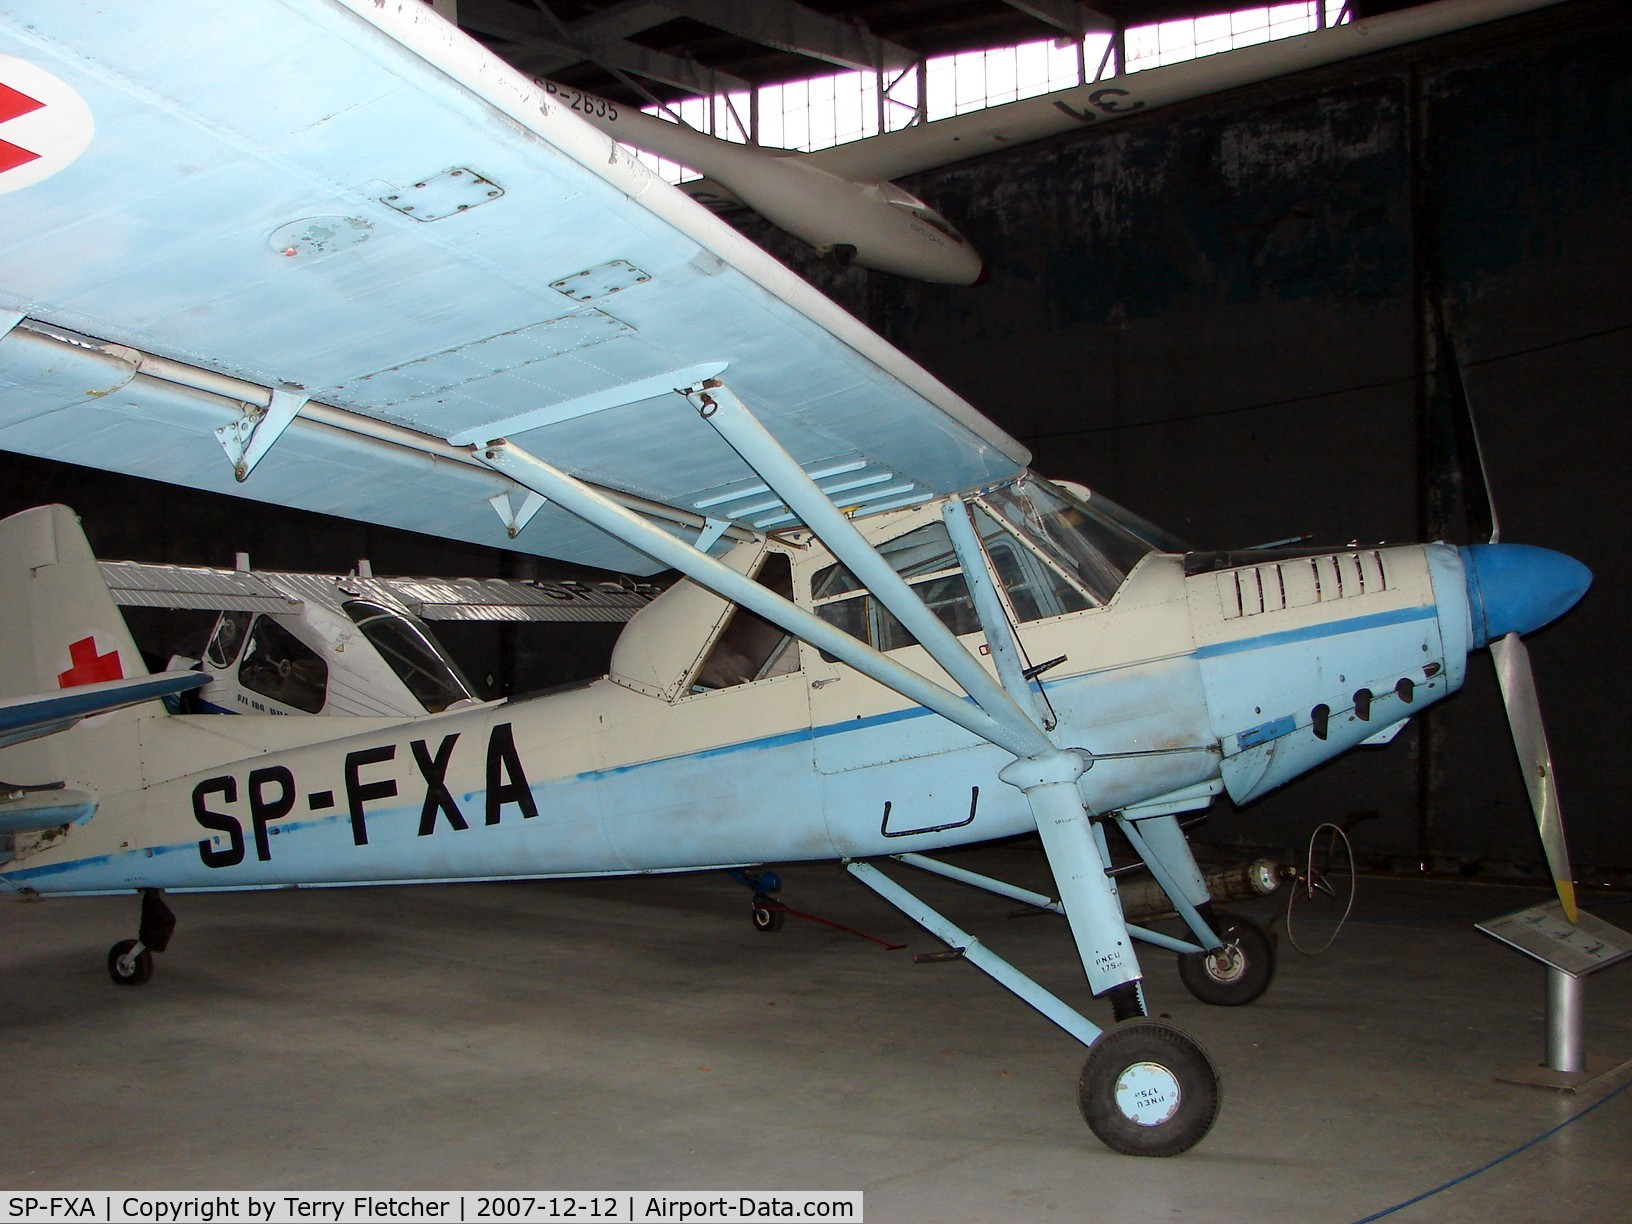 SP-FXA, Aero L-60E Brigadyr C/N 150723, This Let L60E Air Ambulance is preserved at the Poland Aviation Museum in Krakow